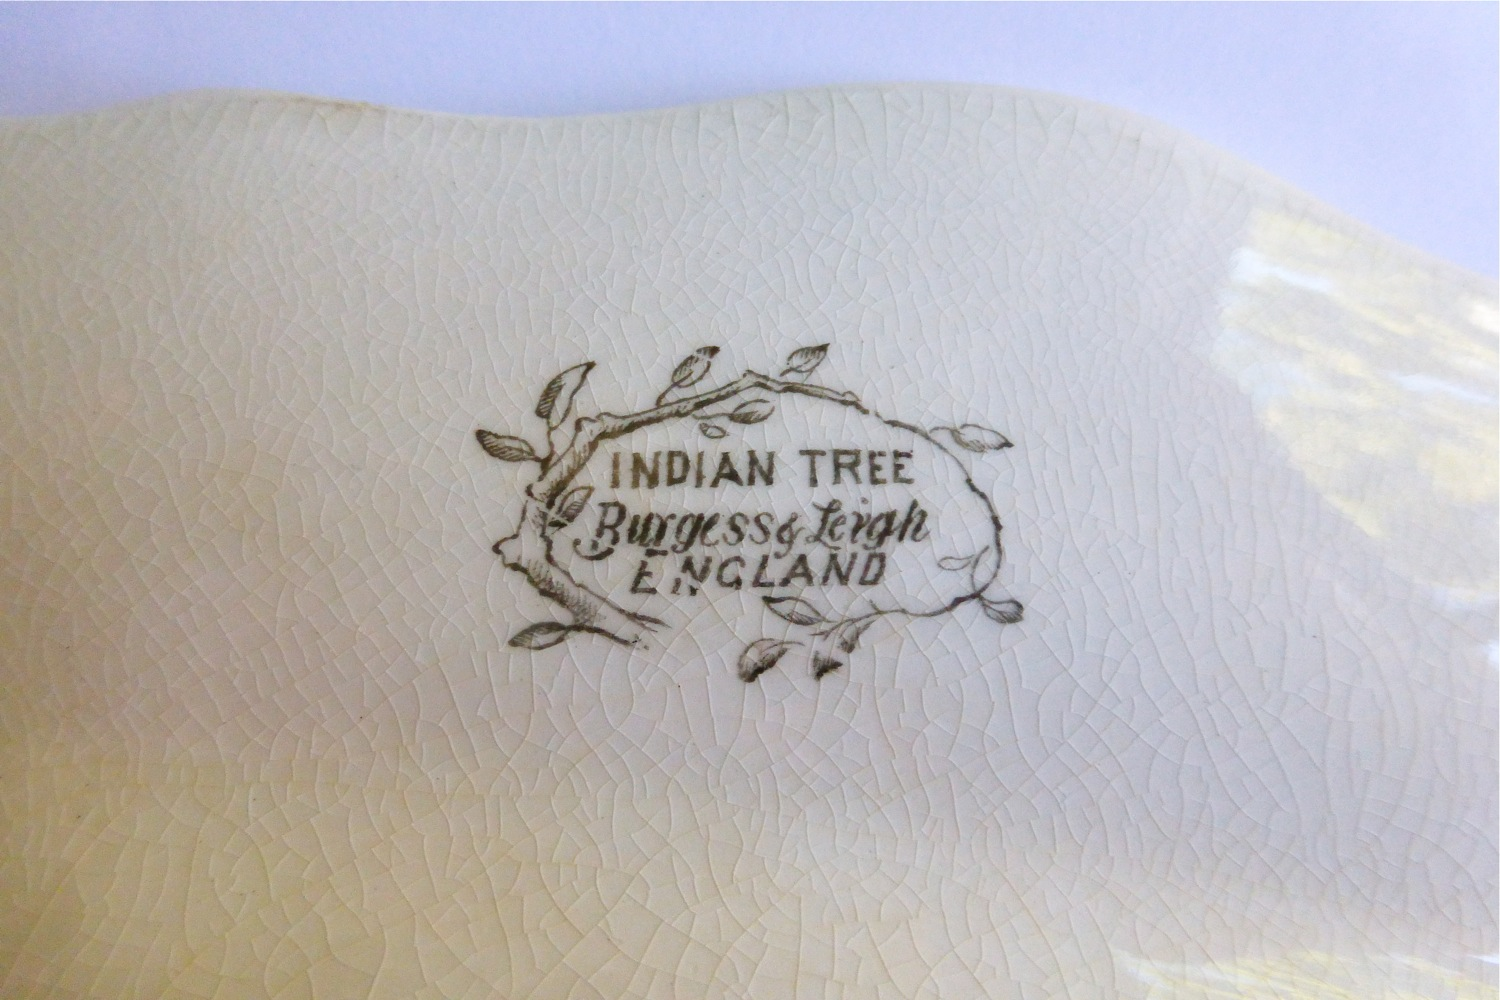 Indian Tree, Burgess & Leigh, English pottery, English pottery backstamp